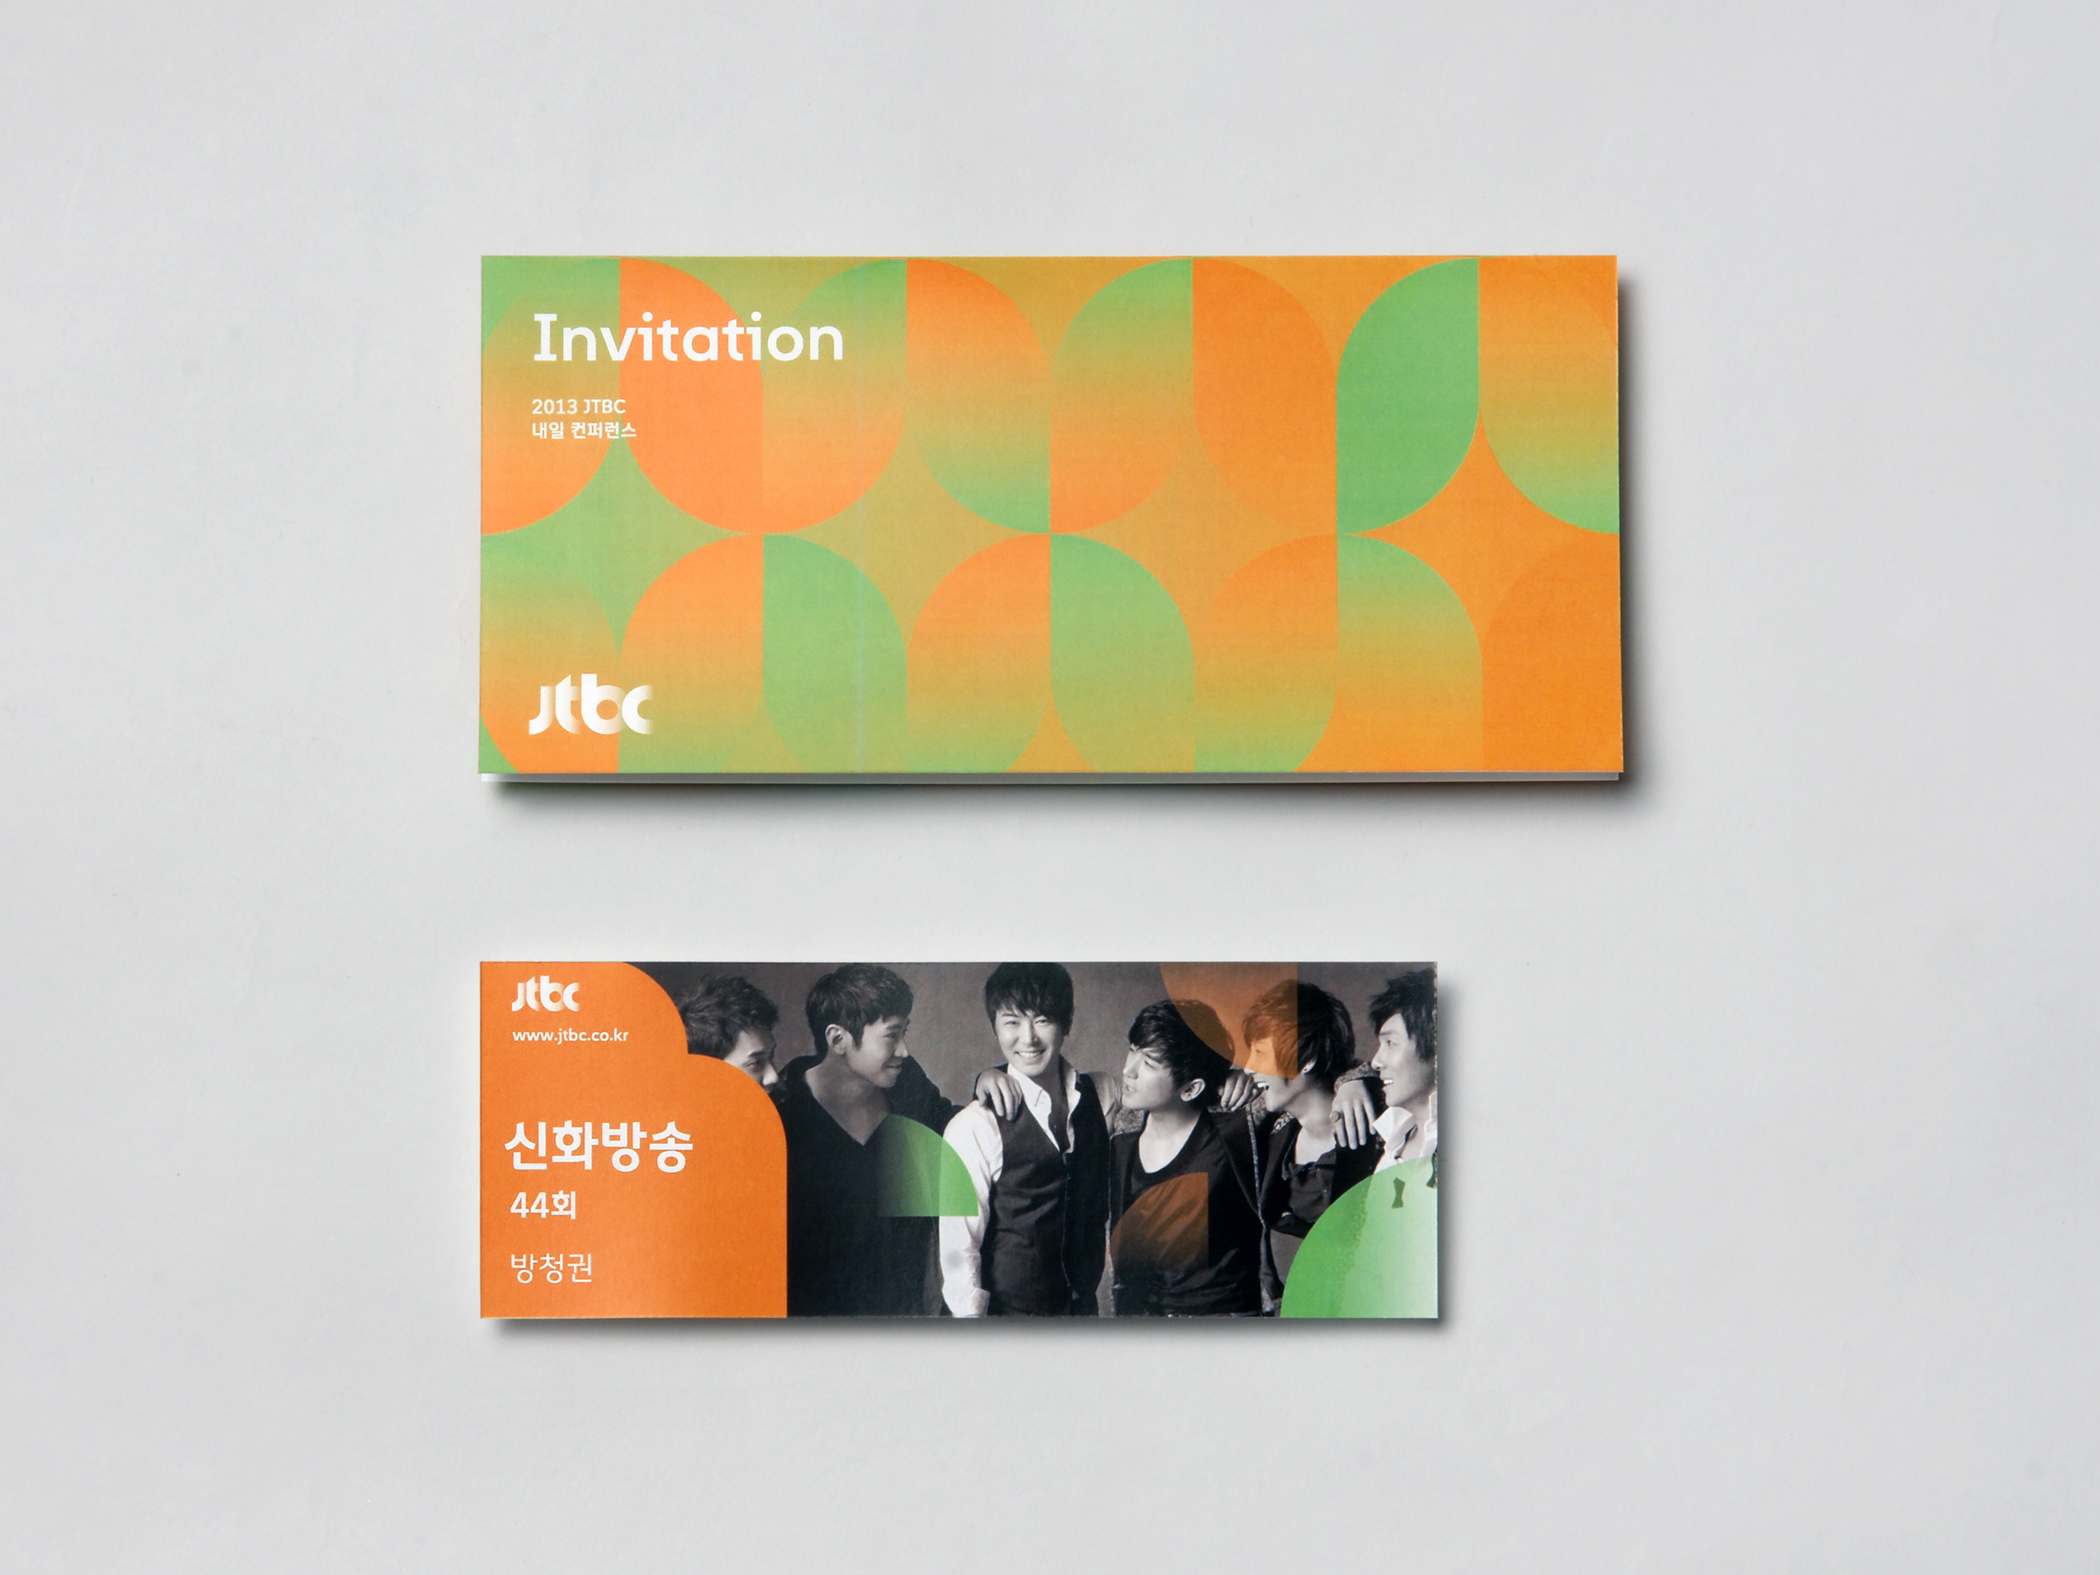 JTBC, JTBC2, JTBC3 and JTBC Golf - studio fnt